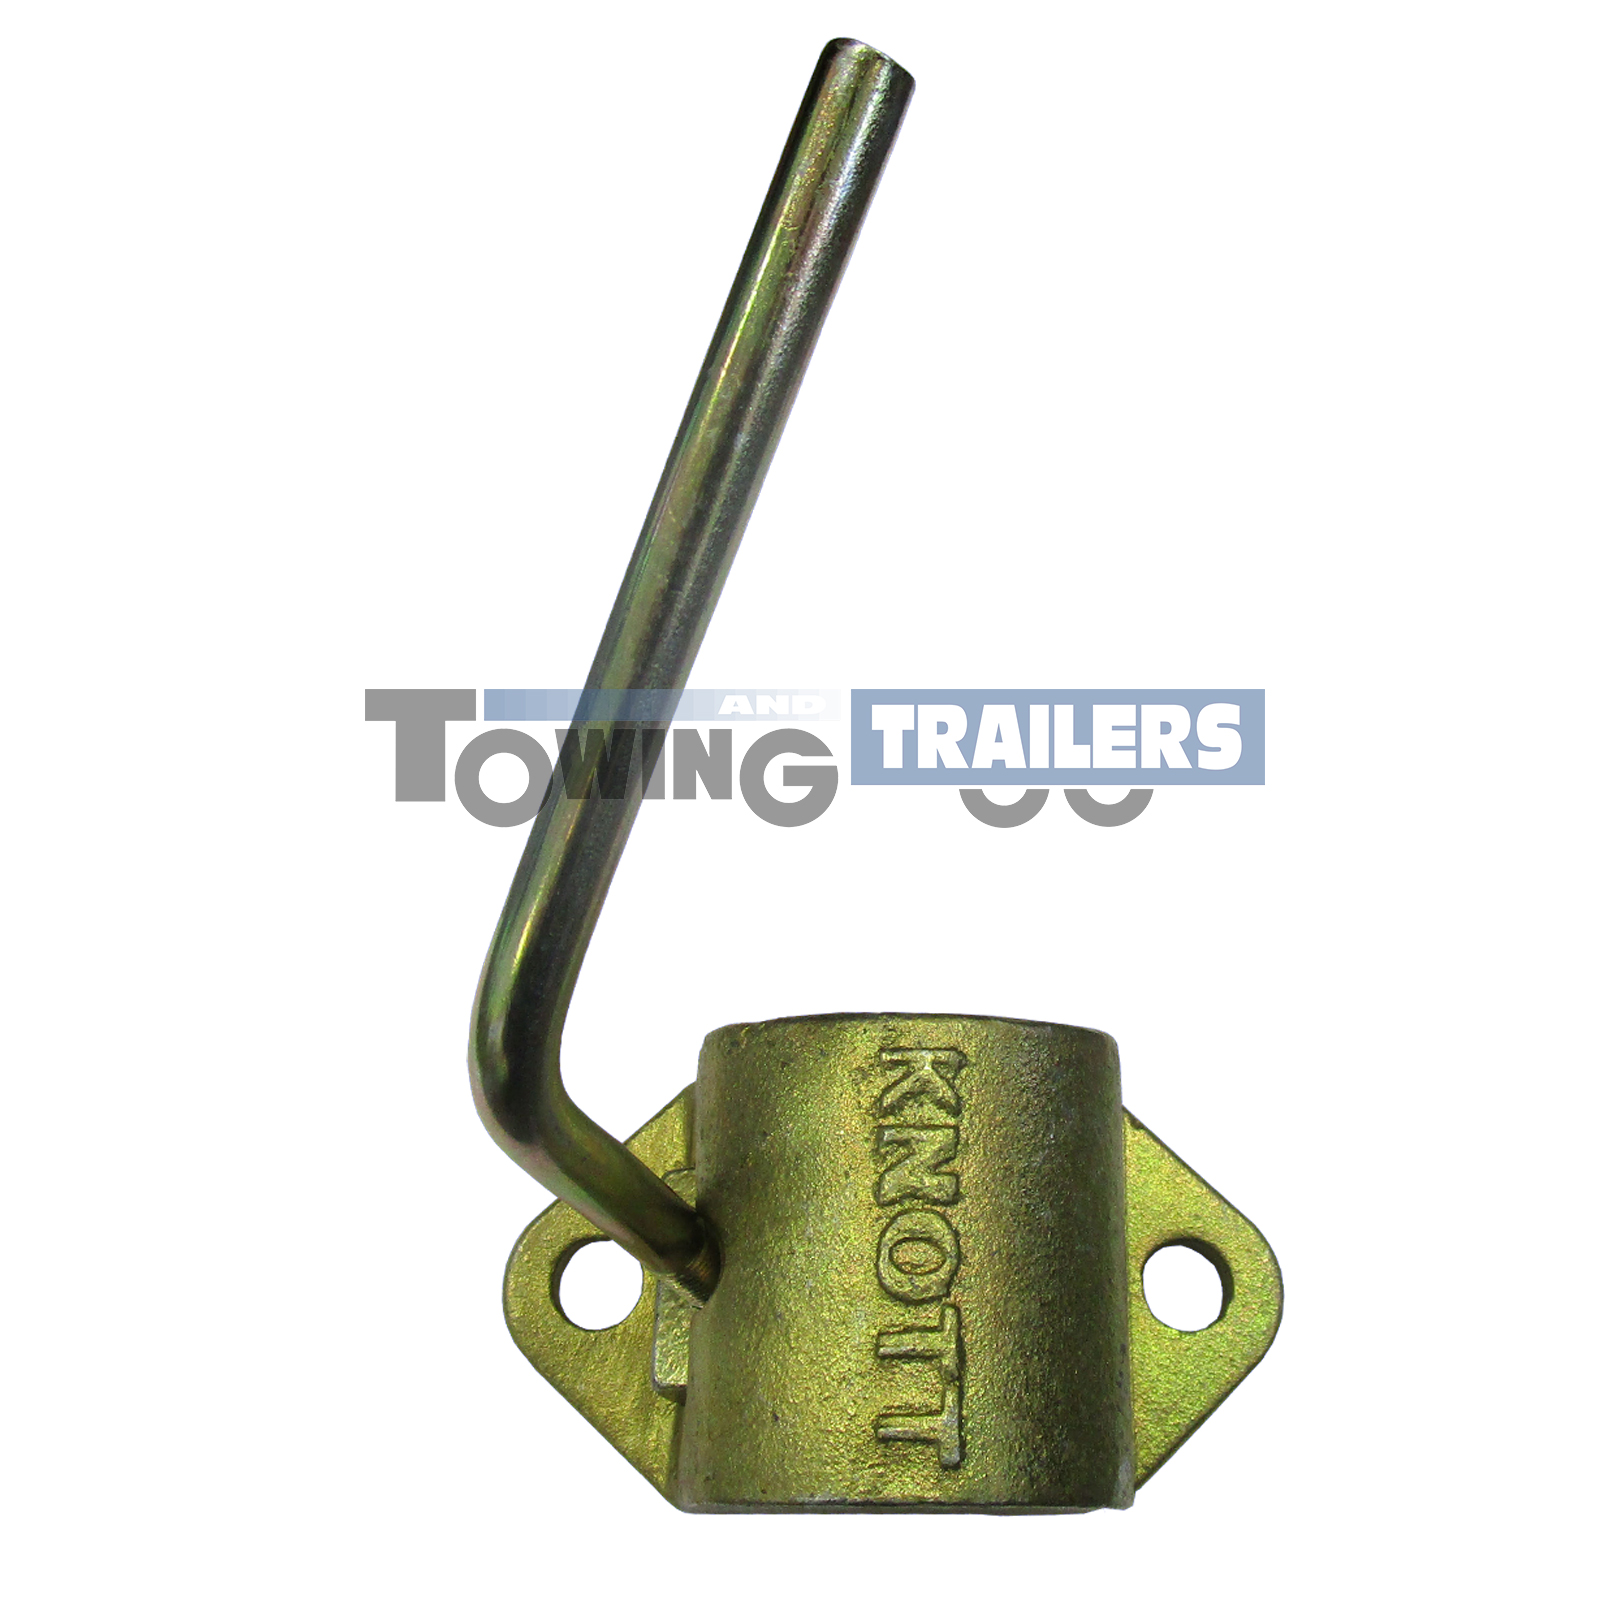 Jockey Wheel Trailer Knott Avonride Short Handle and Pad